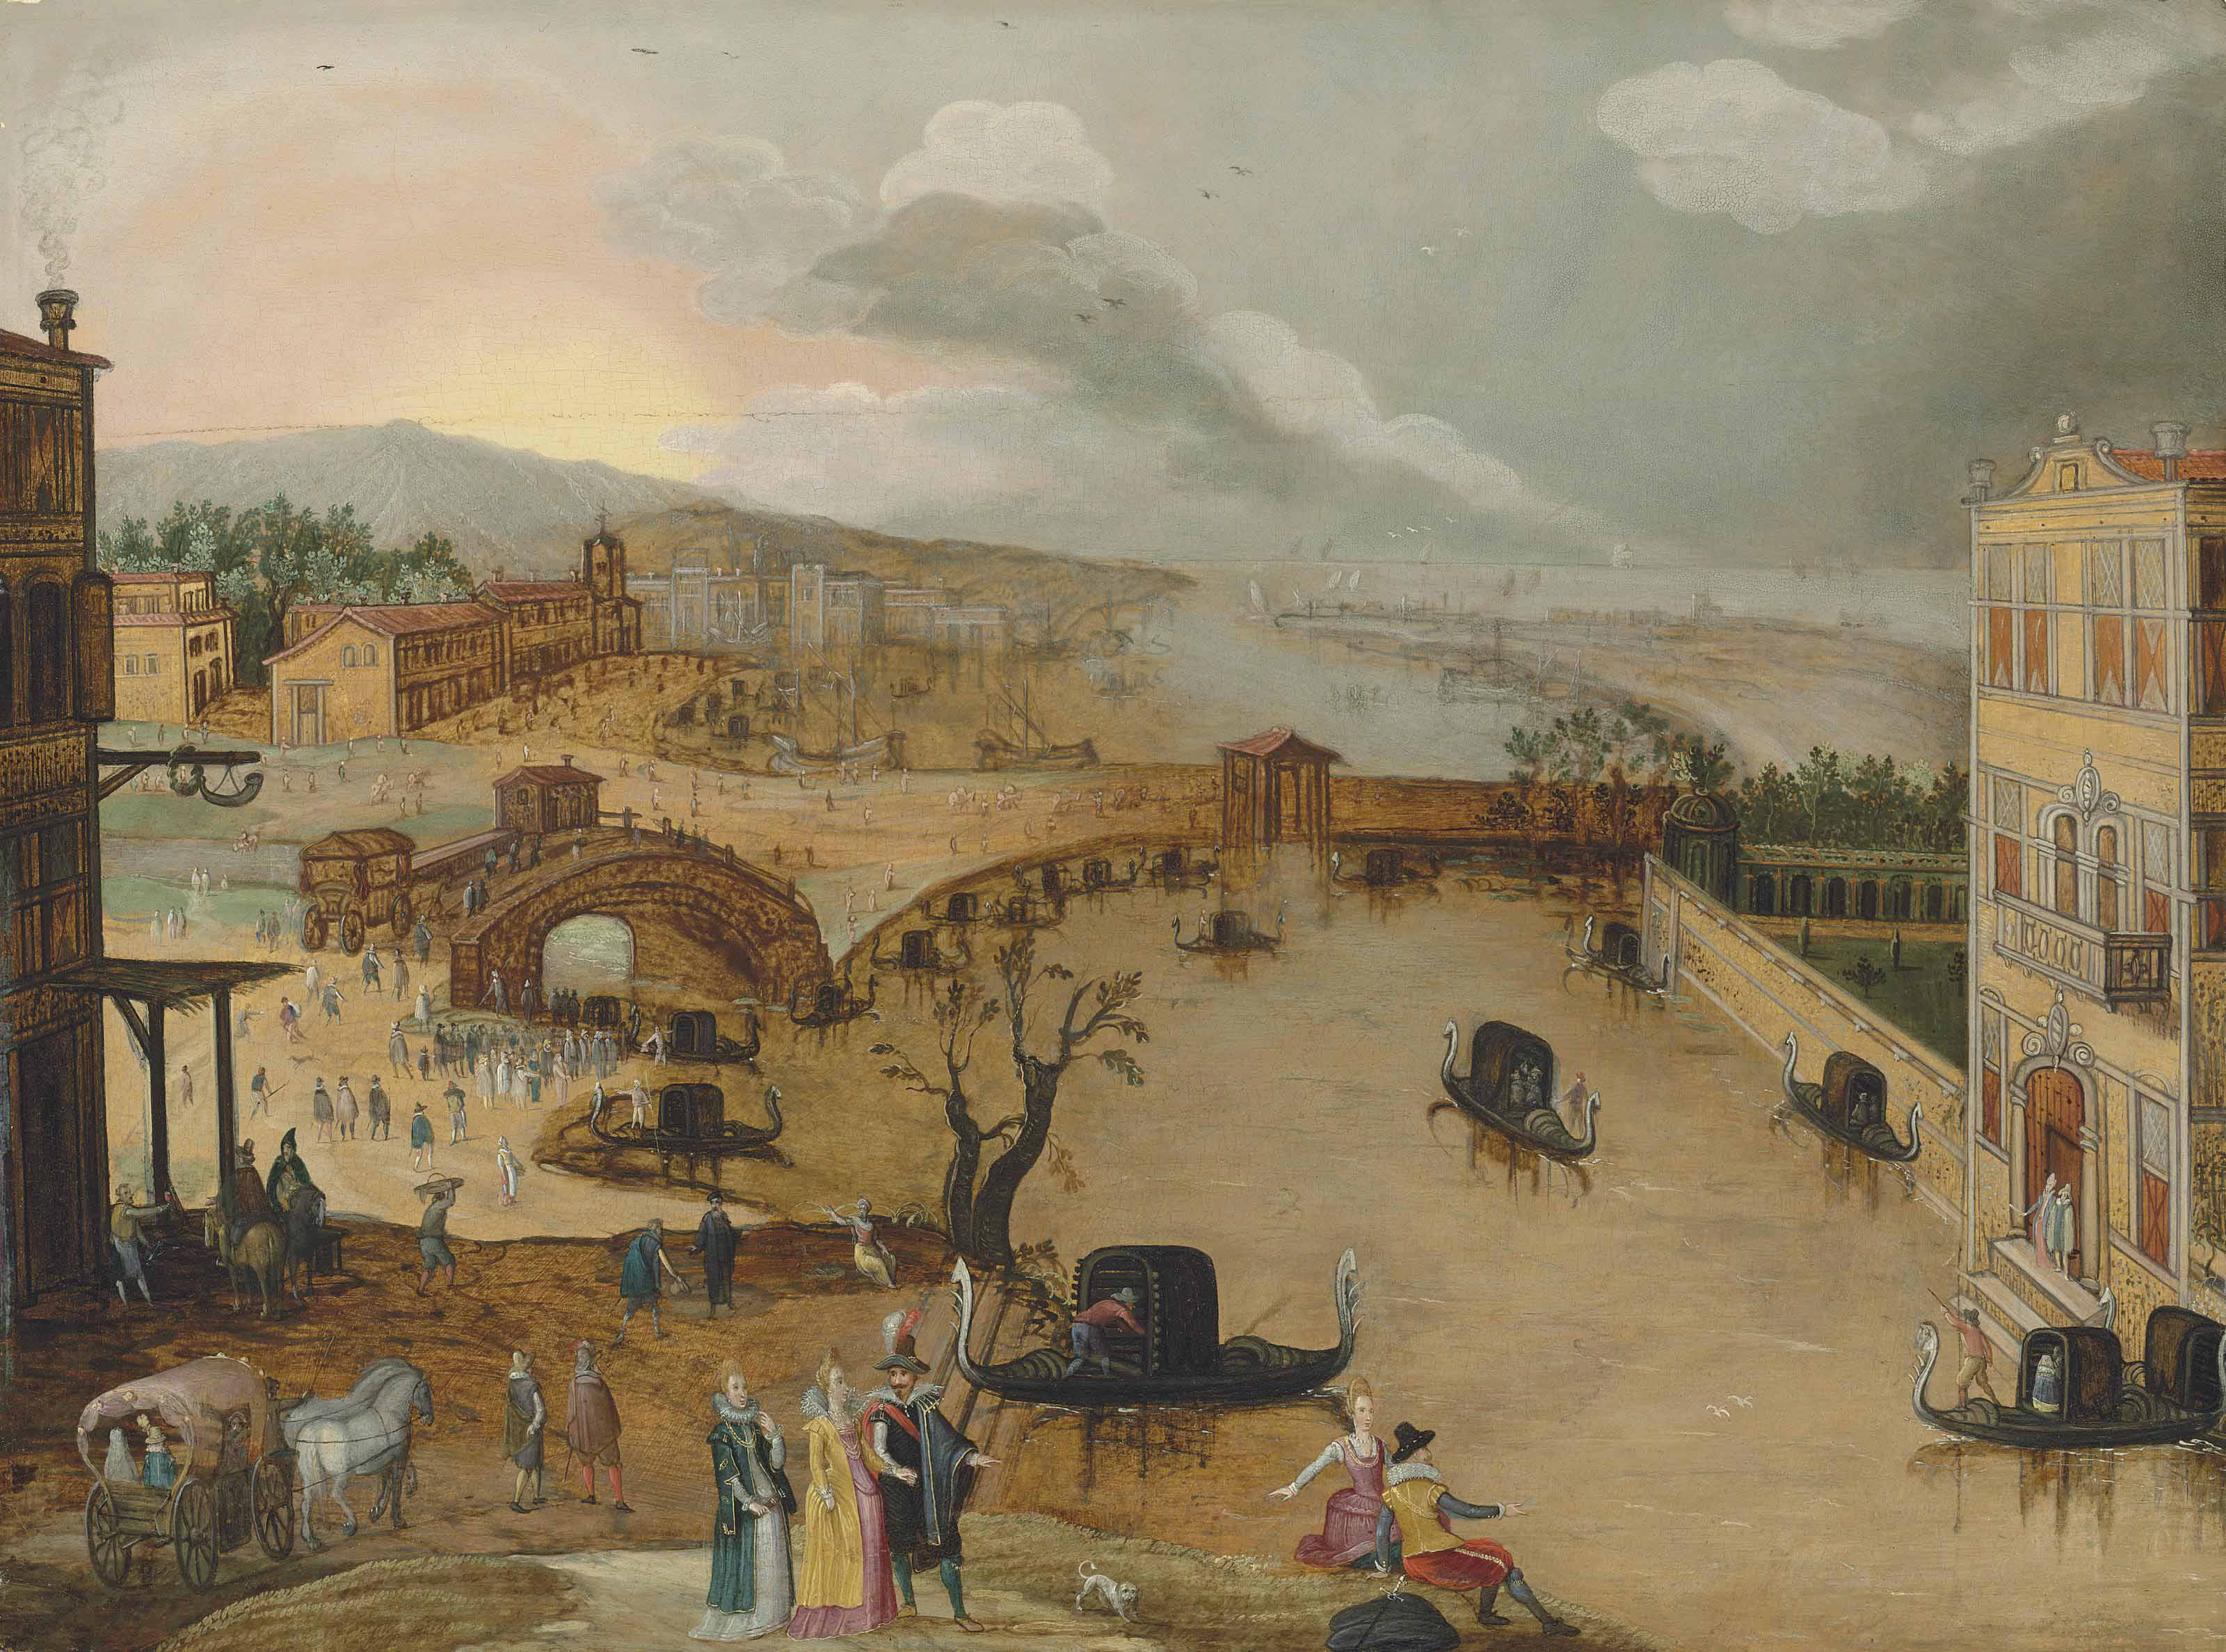 A Venetian capriccio with elegant figures promenading by a canal with gondolas, a mountain and seascape beyond